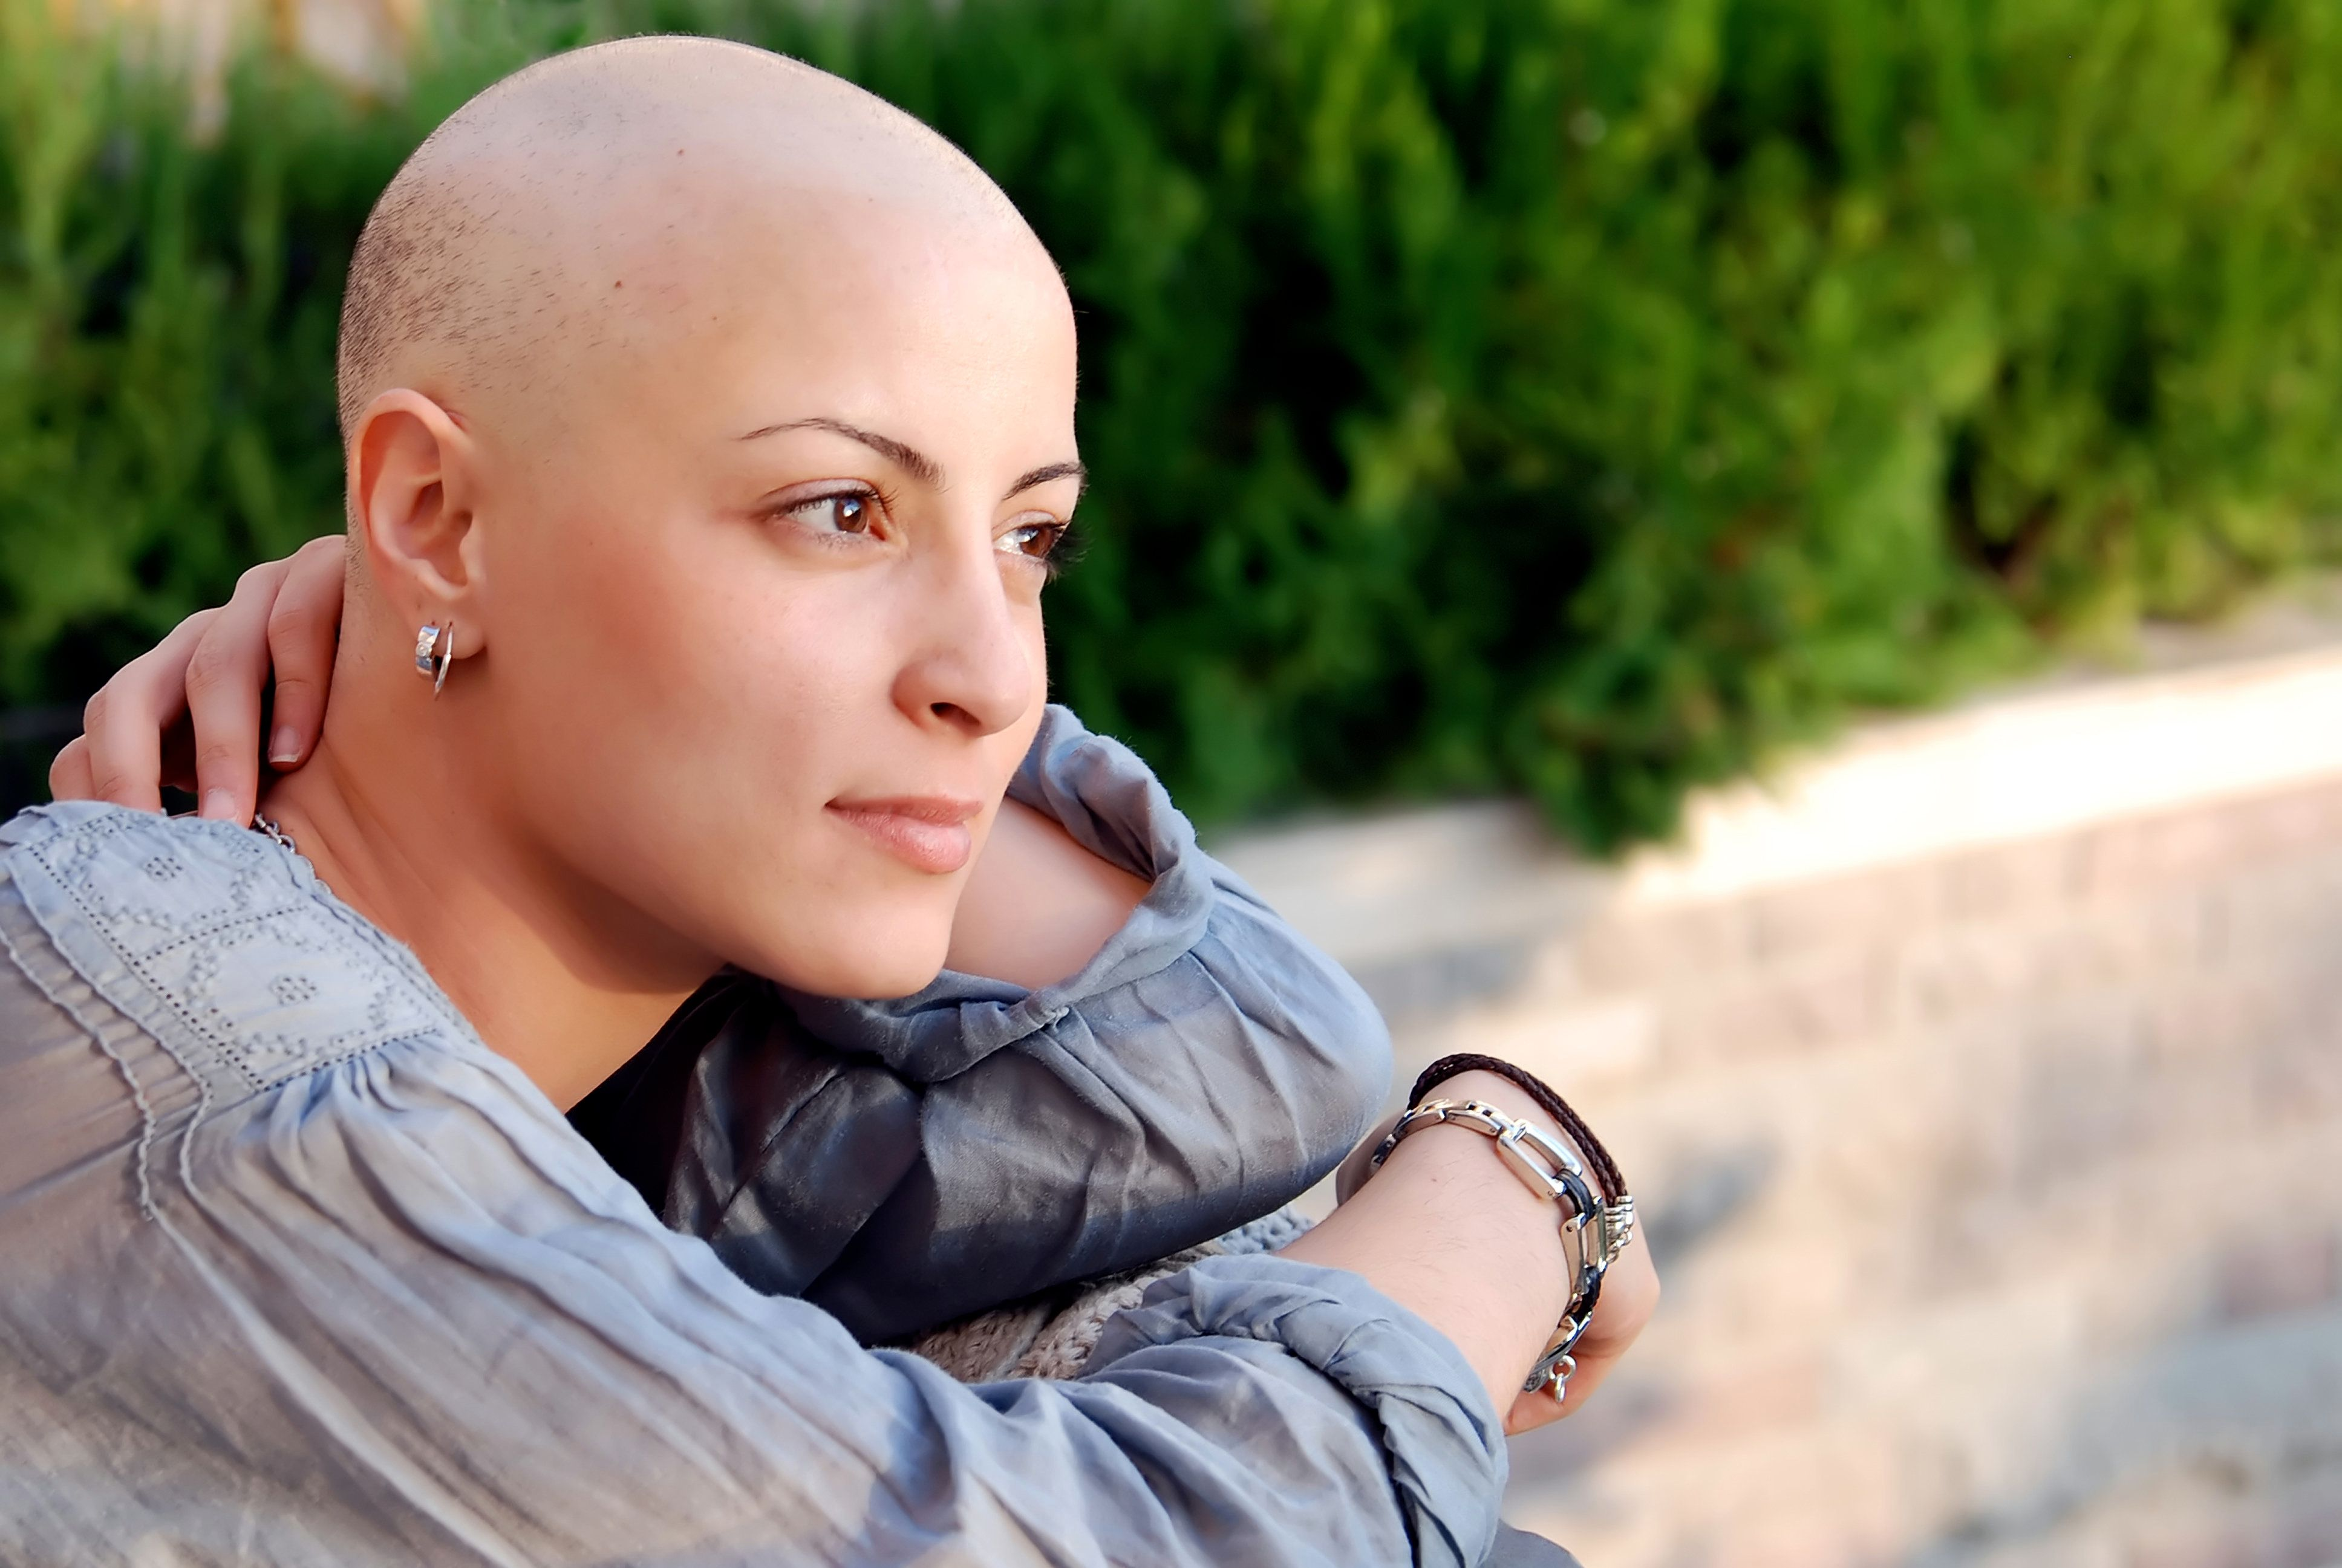 Nearly One In 12 Cancer Patients Go On To Develop Secondary